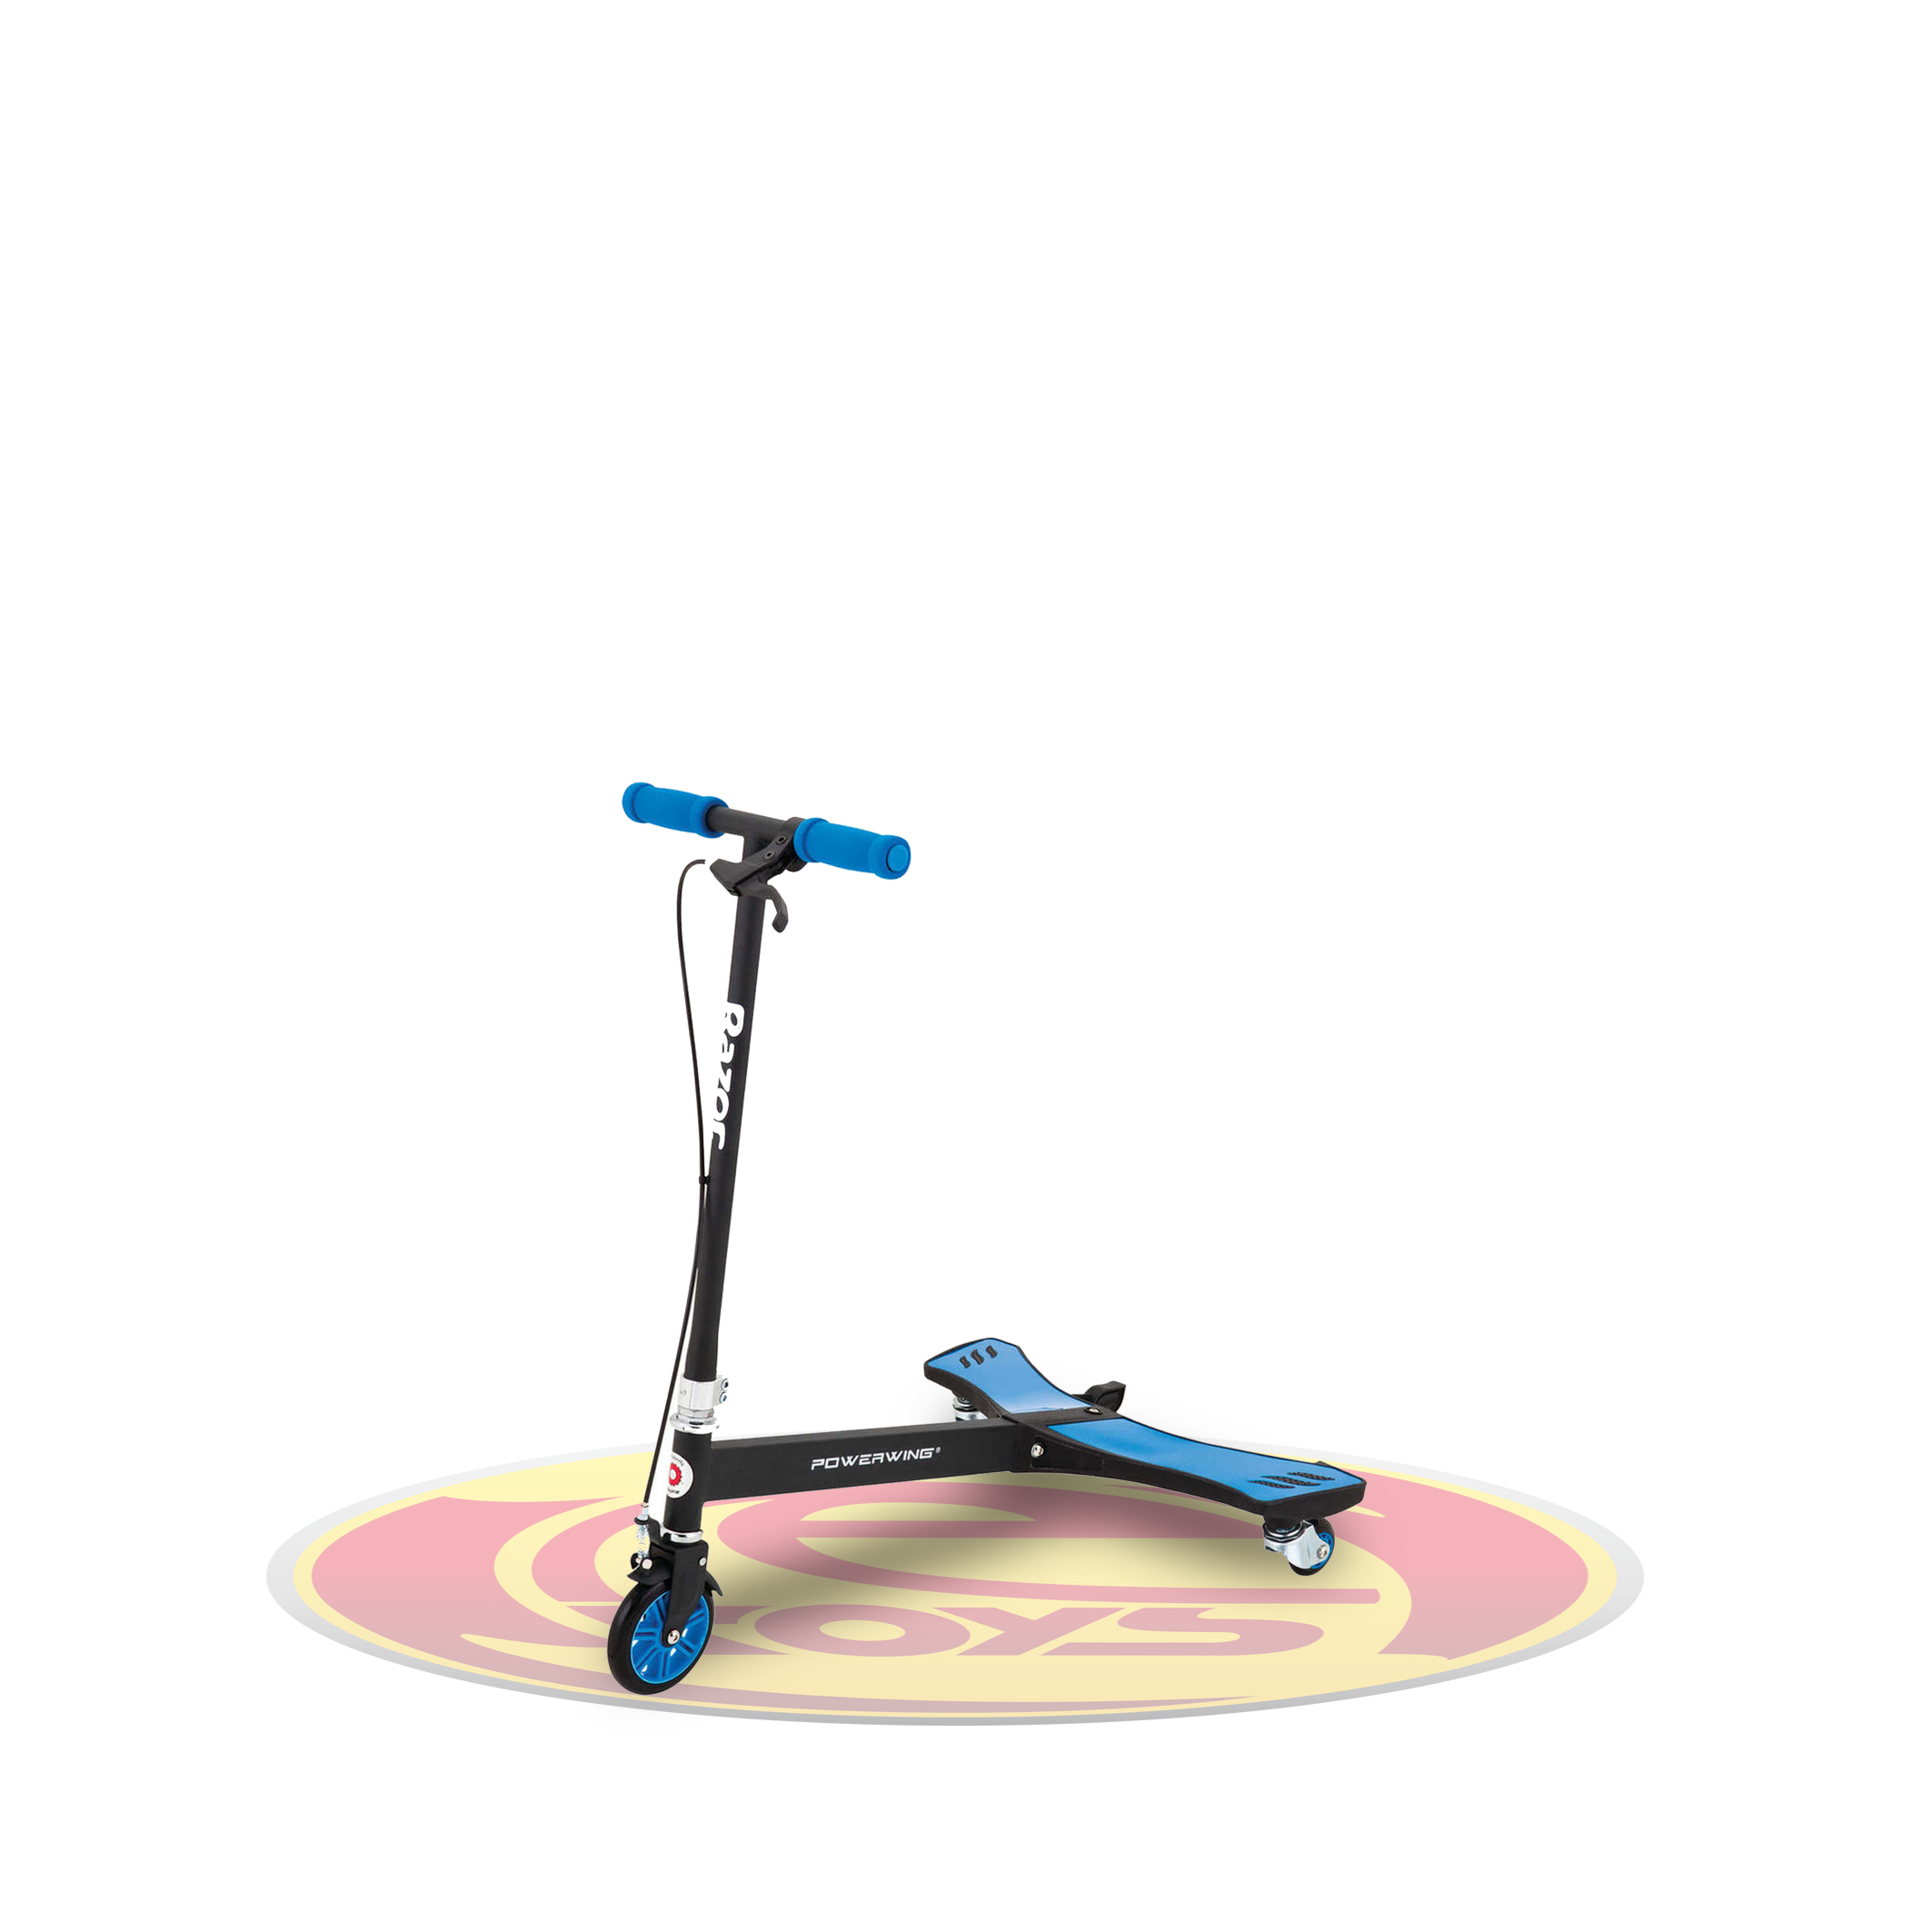 PowerWing Scooter